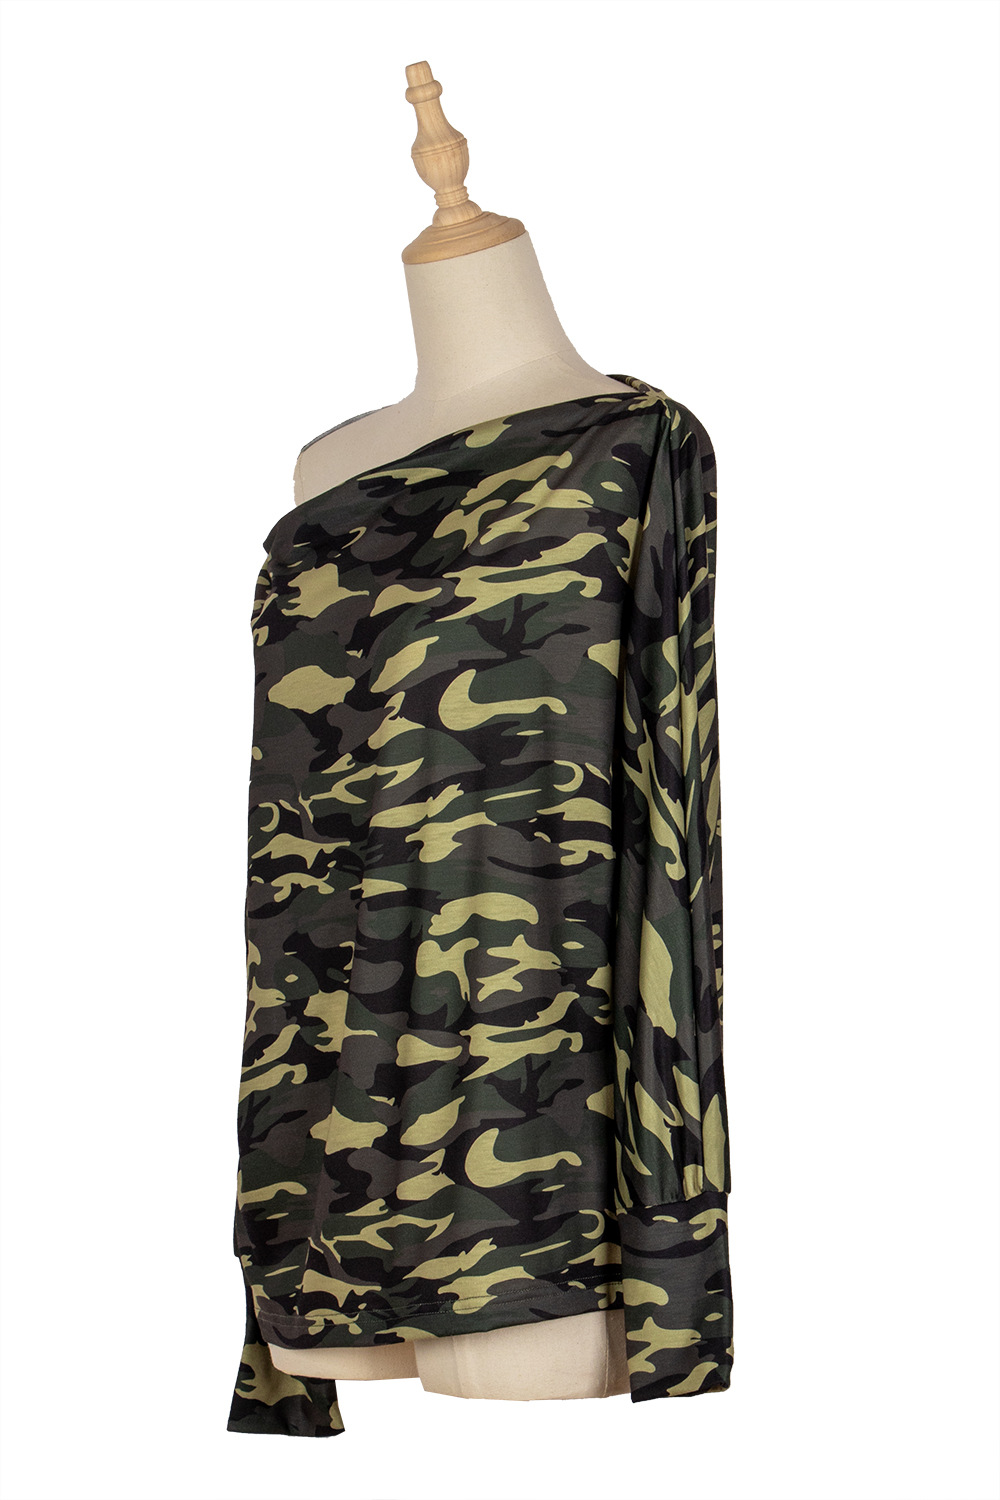 autumn and winter women's strapless camouflage knitted loose bottoming long-sleeved T-shirt  NSDF5180